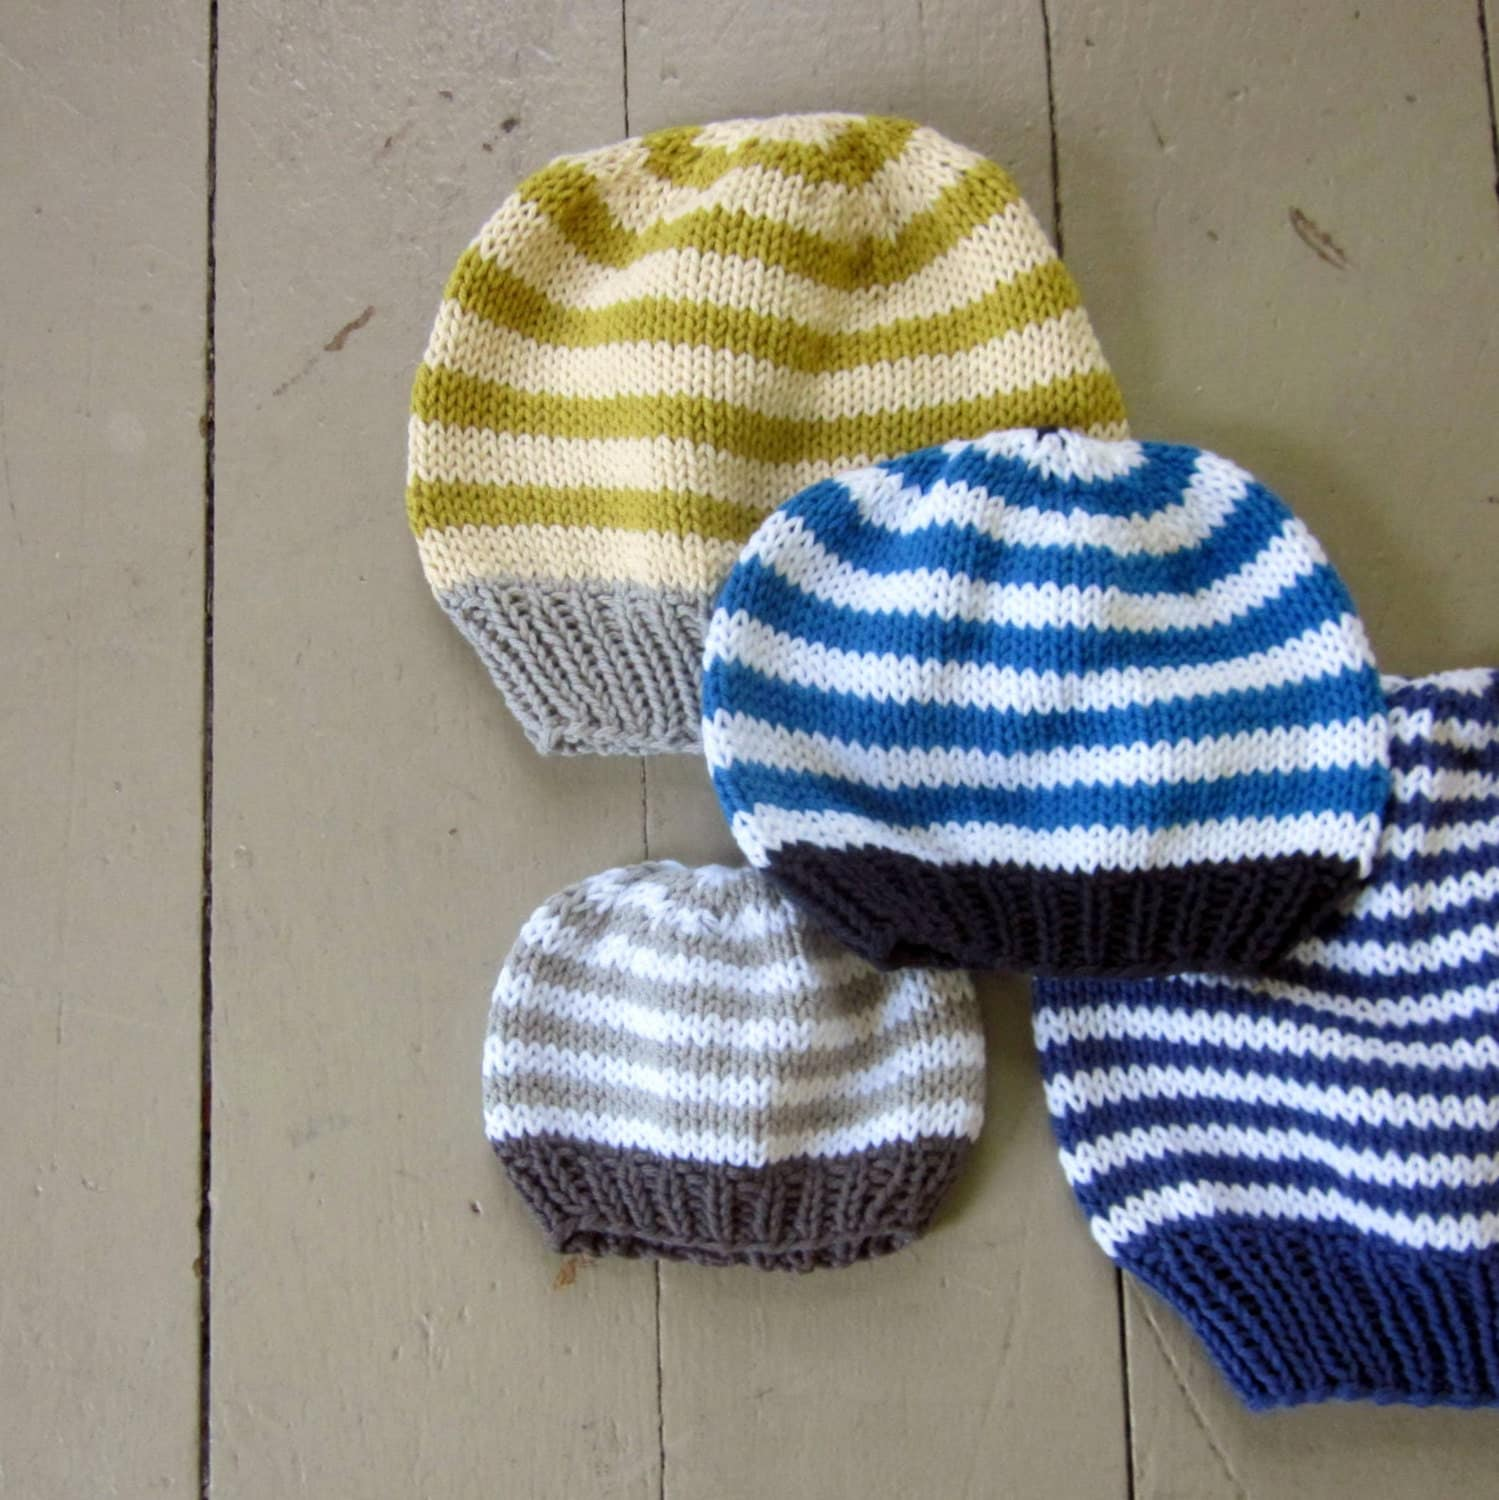 Knitted Baby Beanies Patterns : Baby Hat Knitting Pattern basic beanie PDF by sweetbabydolly